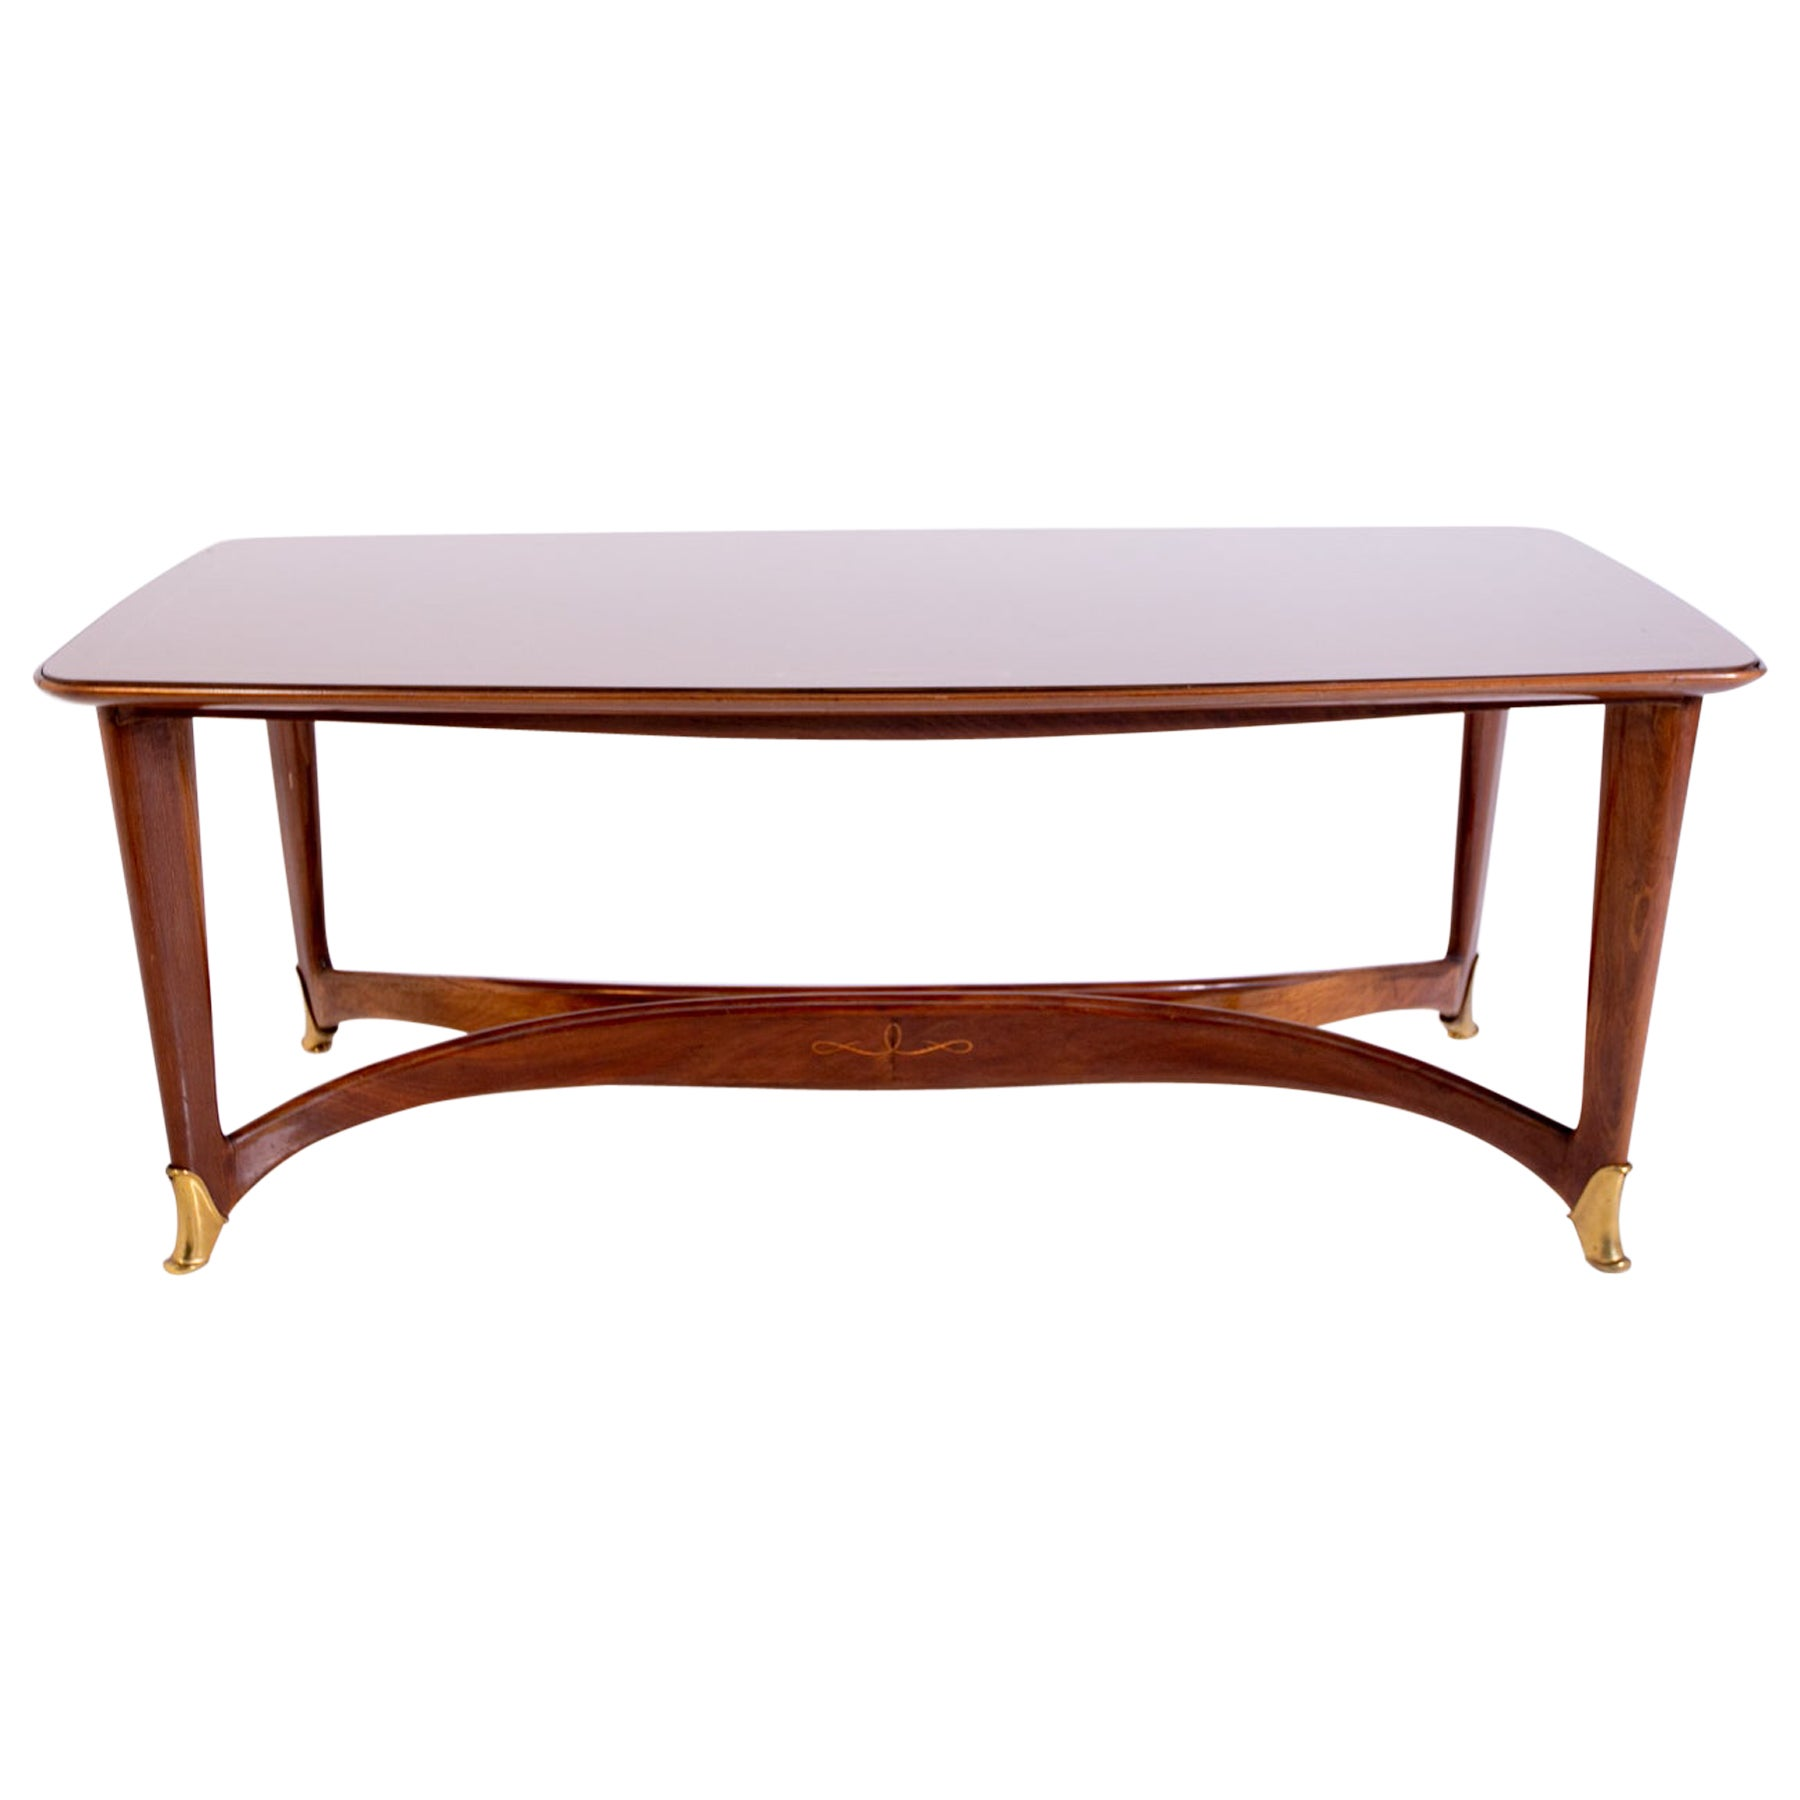 Dining Table by Guglielmo Ulrich, 1950s